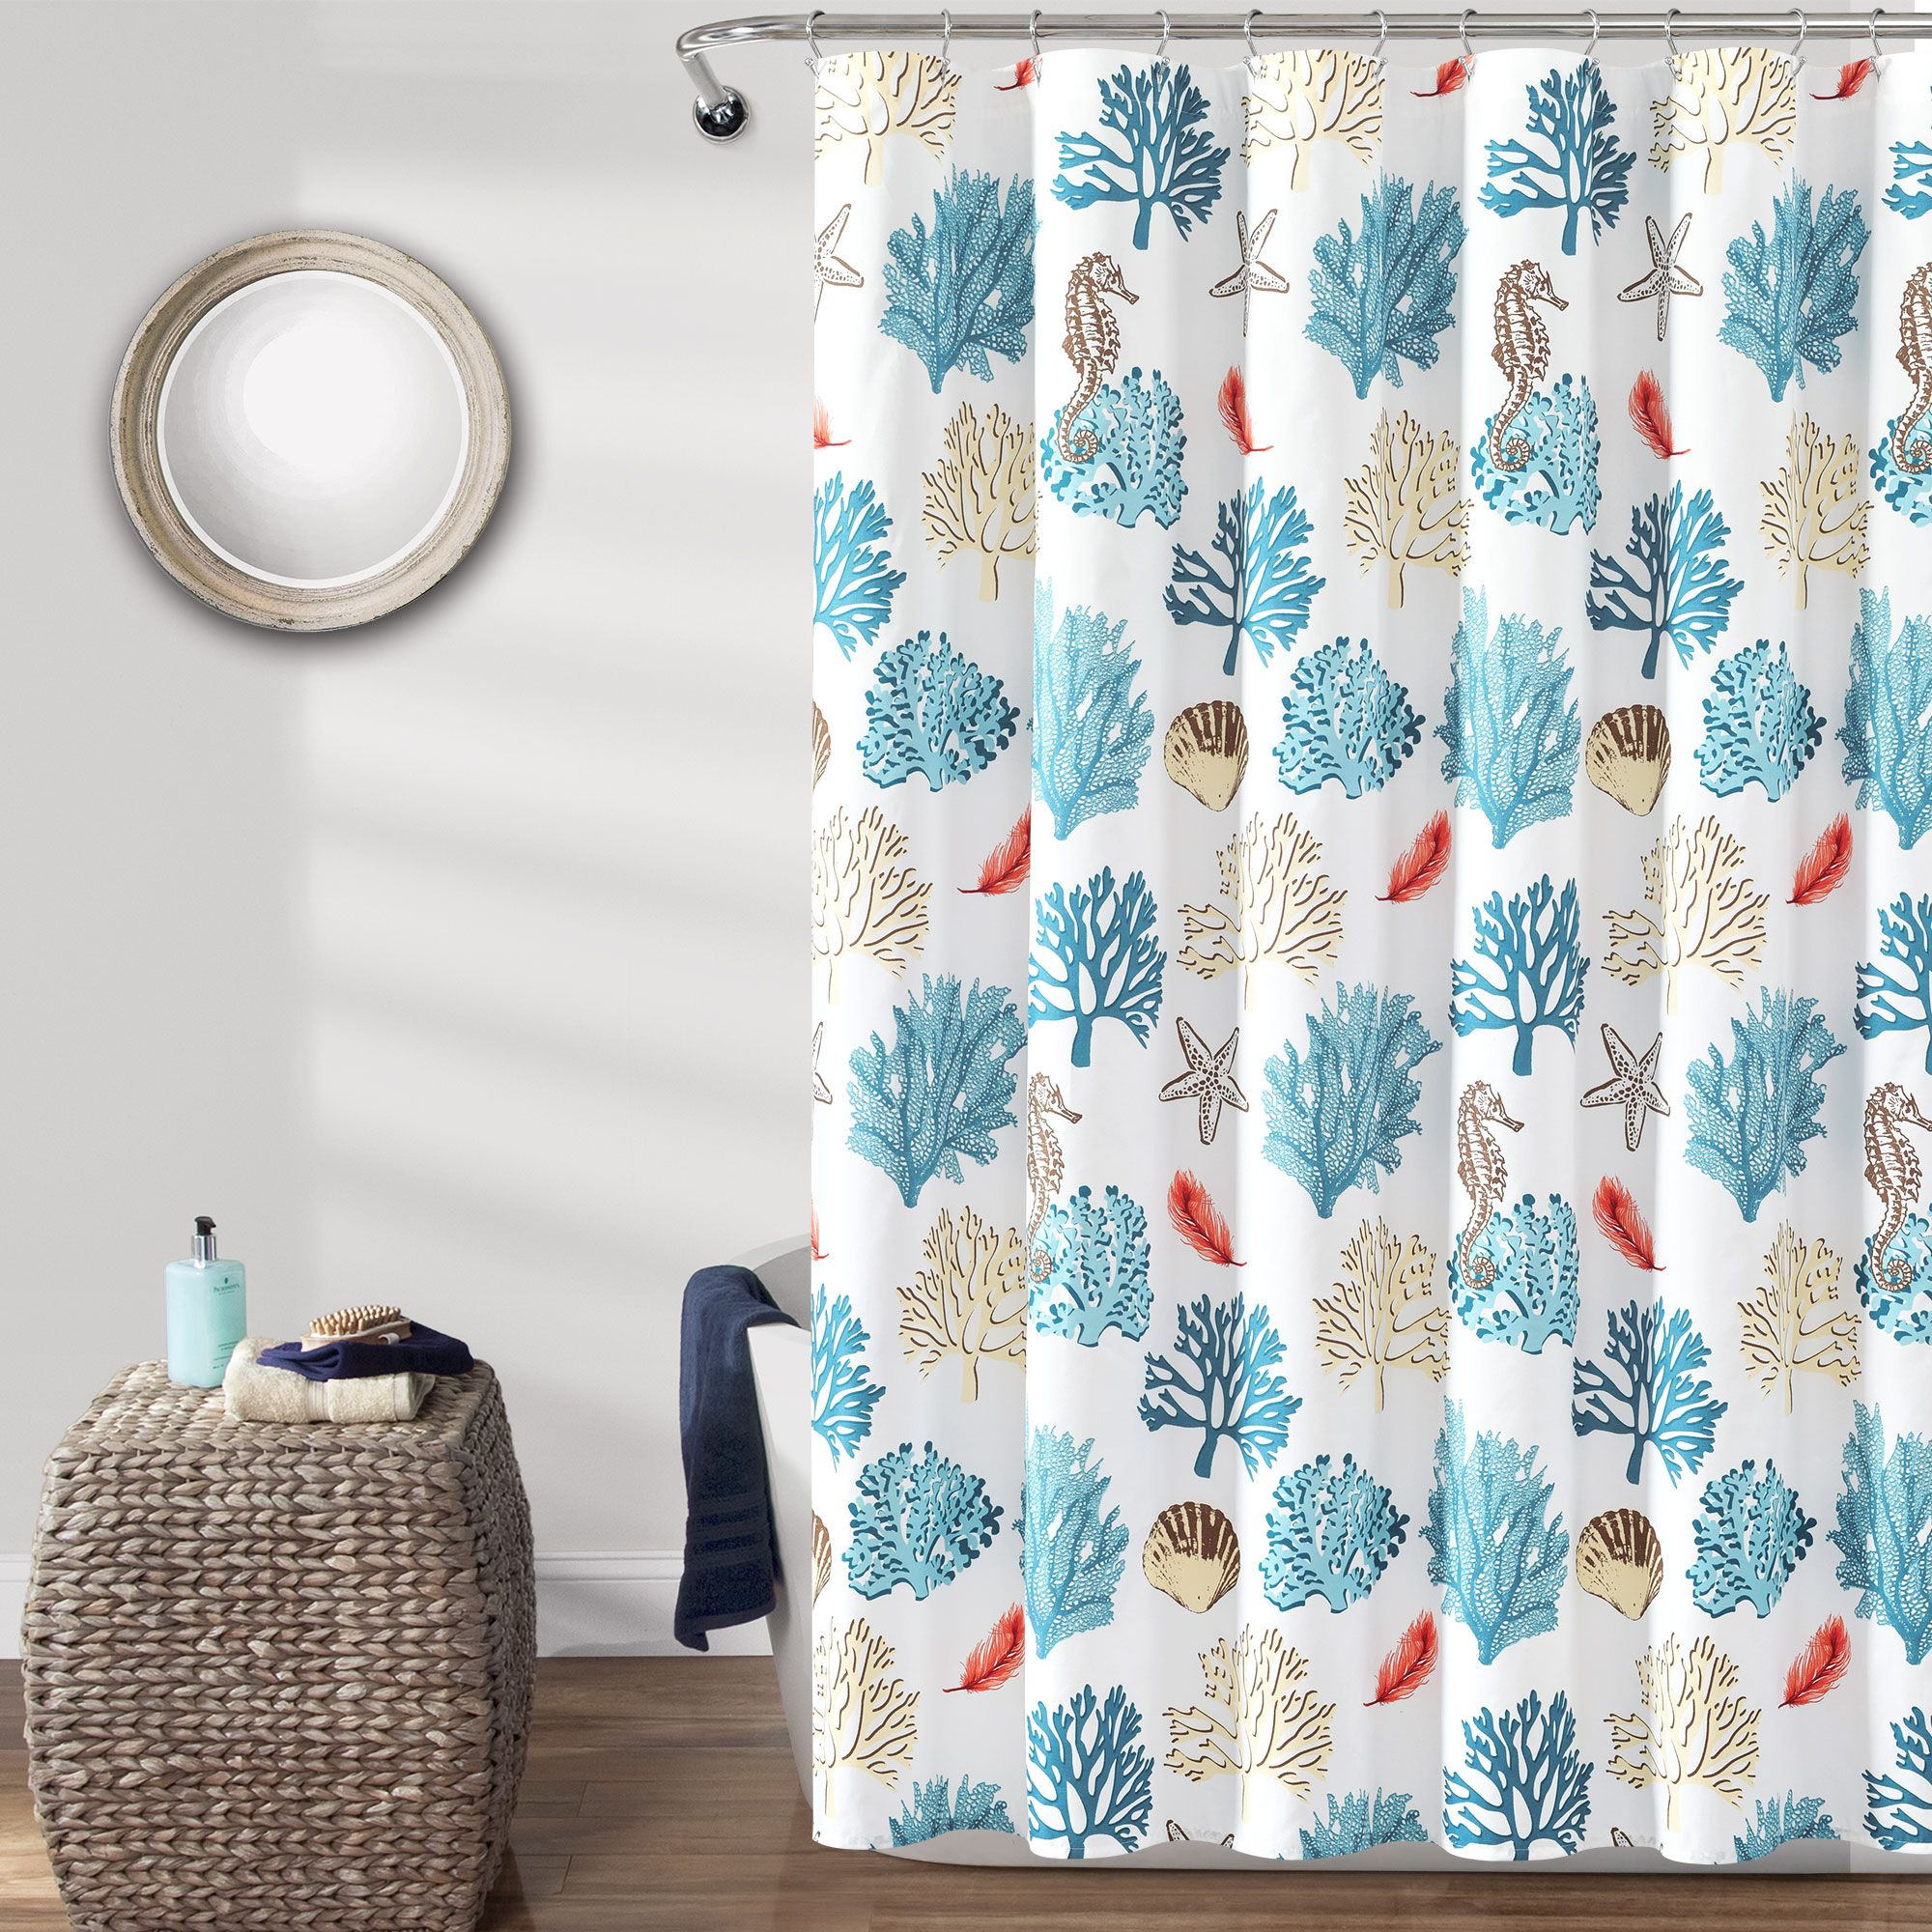 Coastal Reef Feather Shower Curtain Curtains Shower Coral Blue